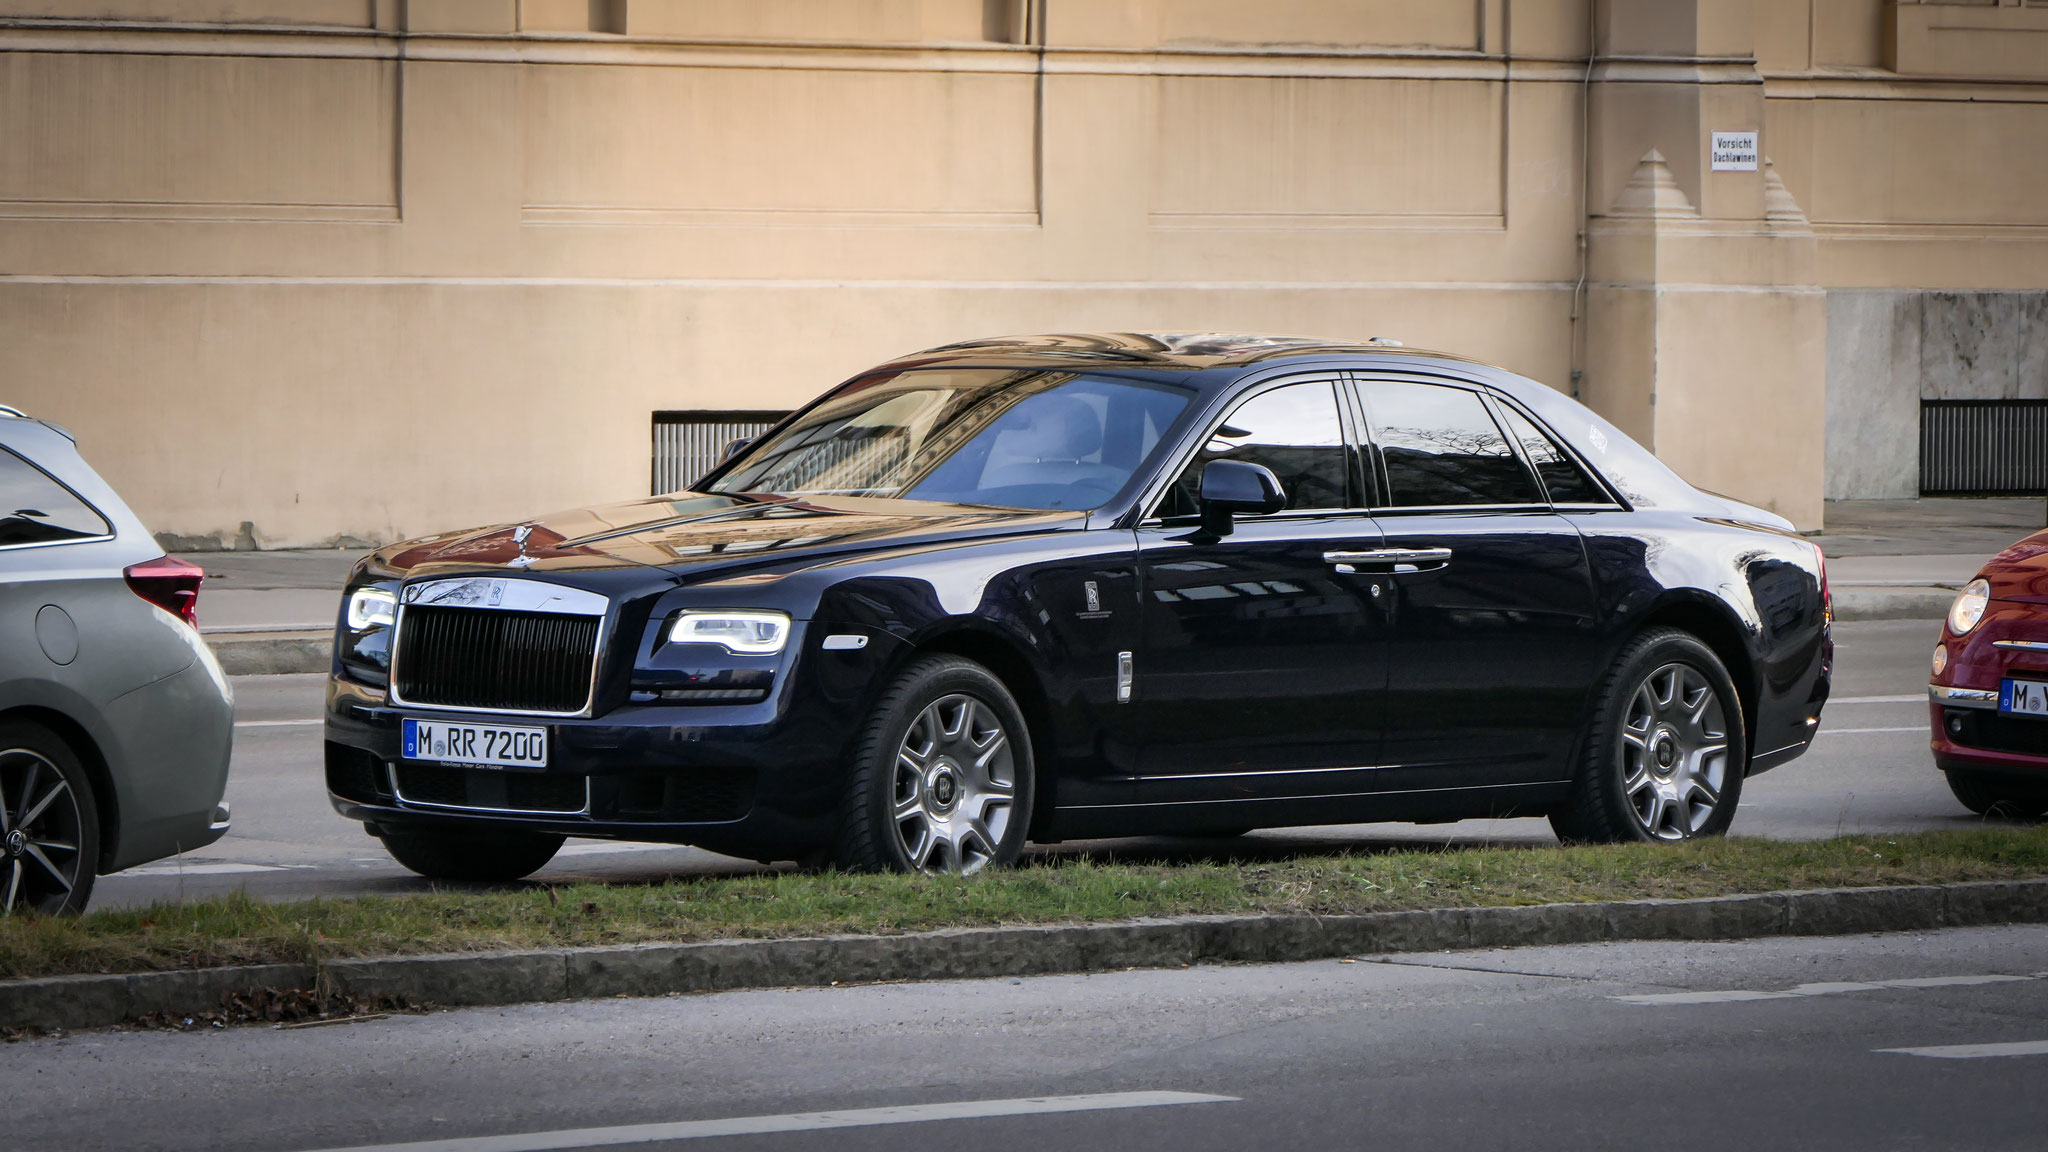 Rolls Royce Ghost Series II - M-RR-7200